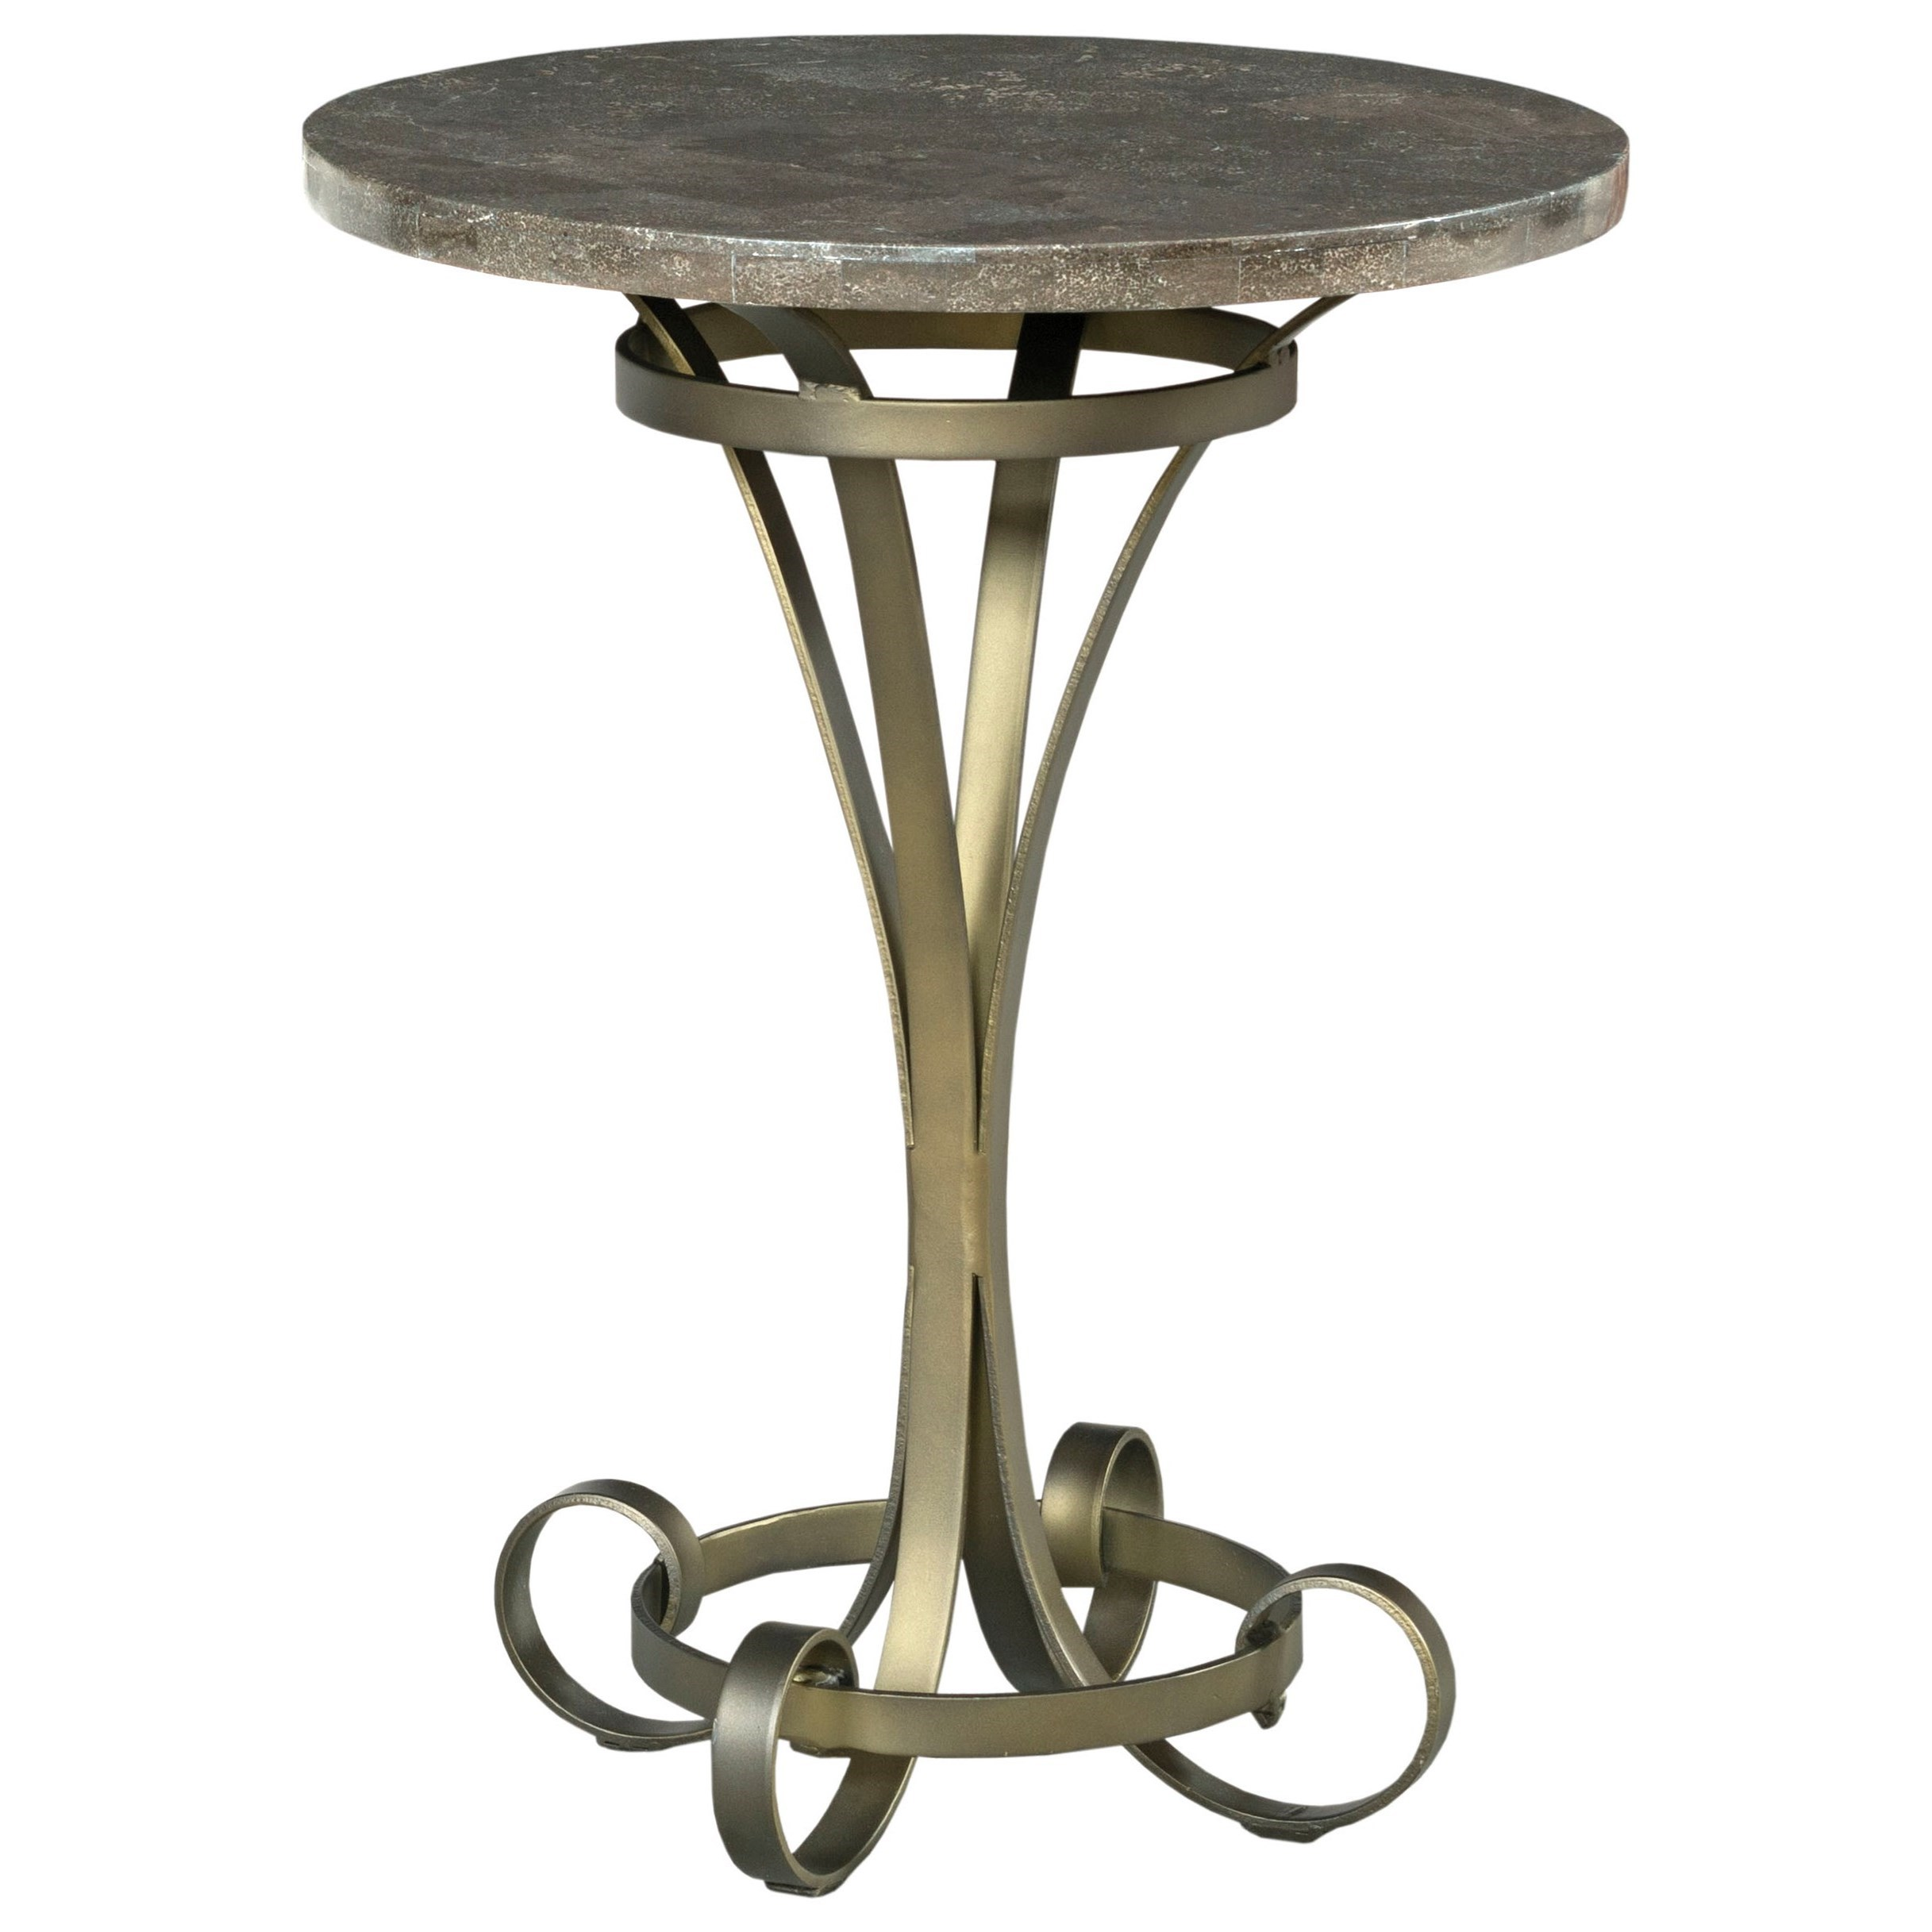 Savona Louise Round Lamp Table by American Drew at Johnny Janosik